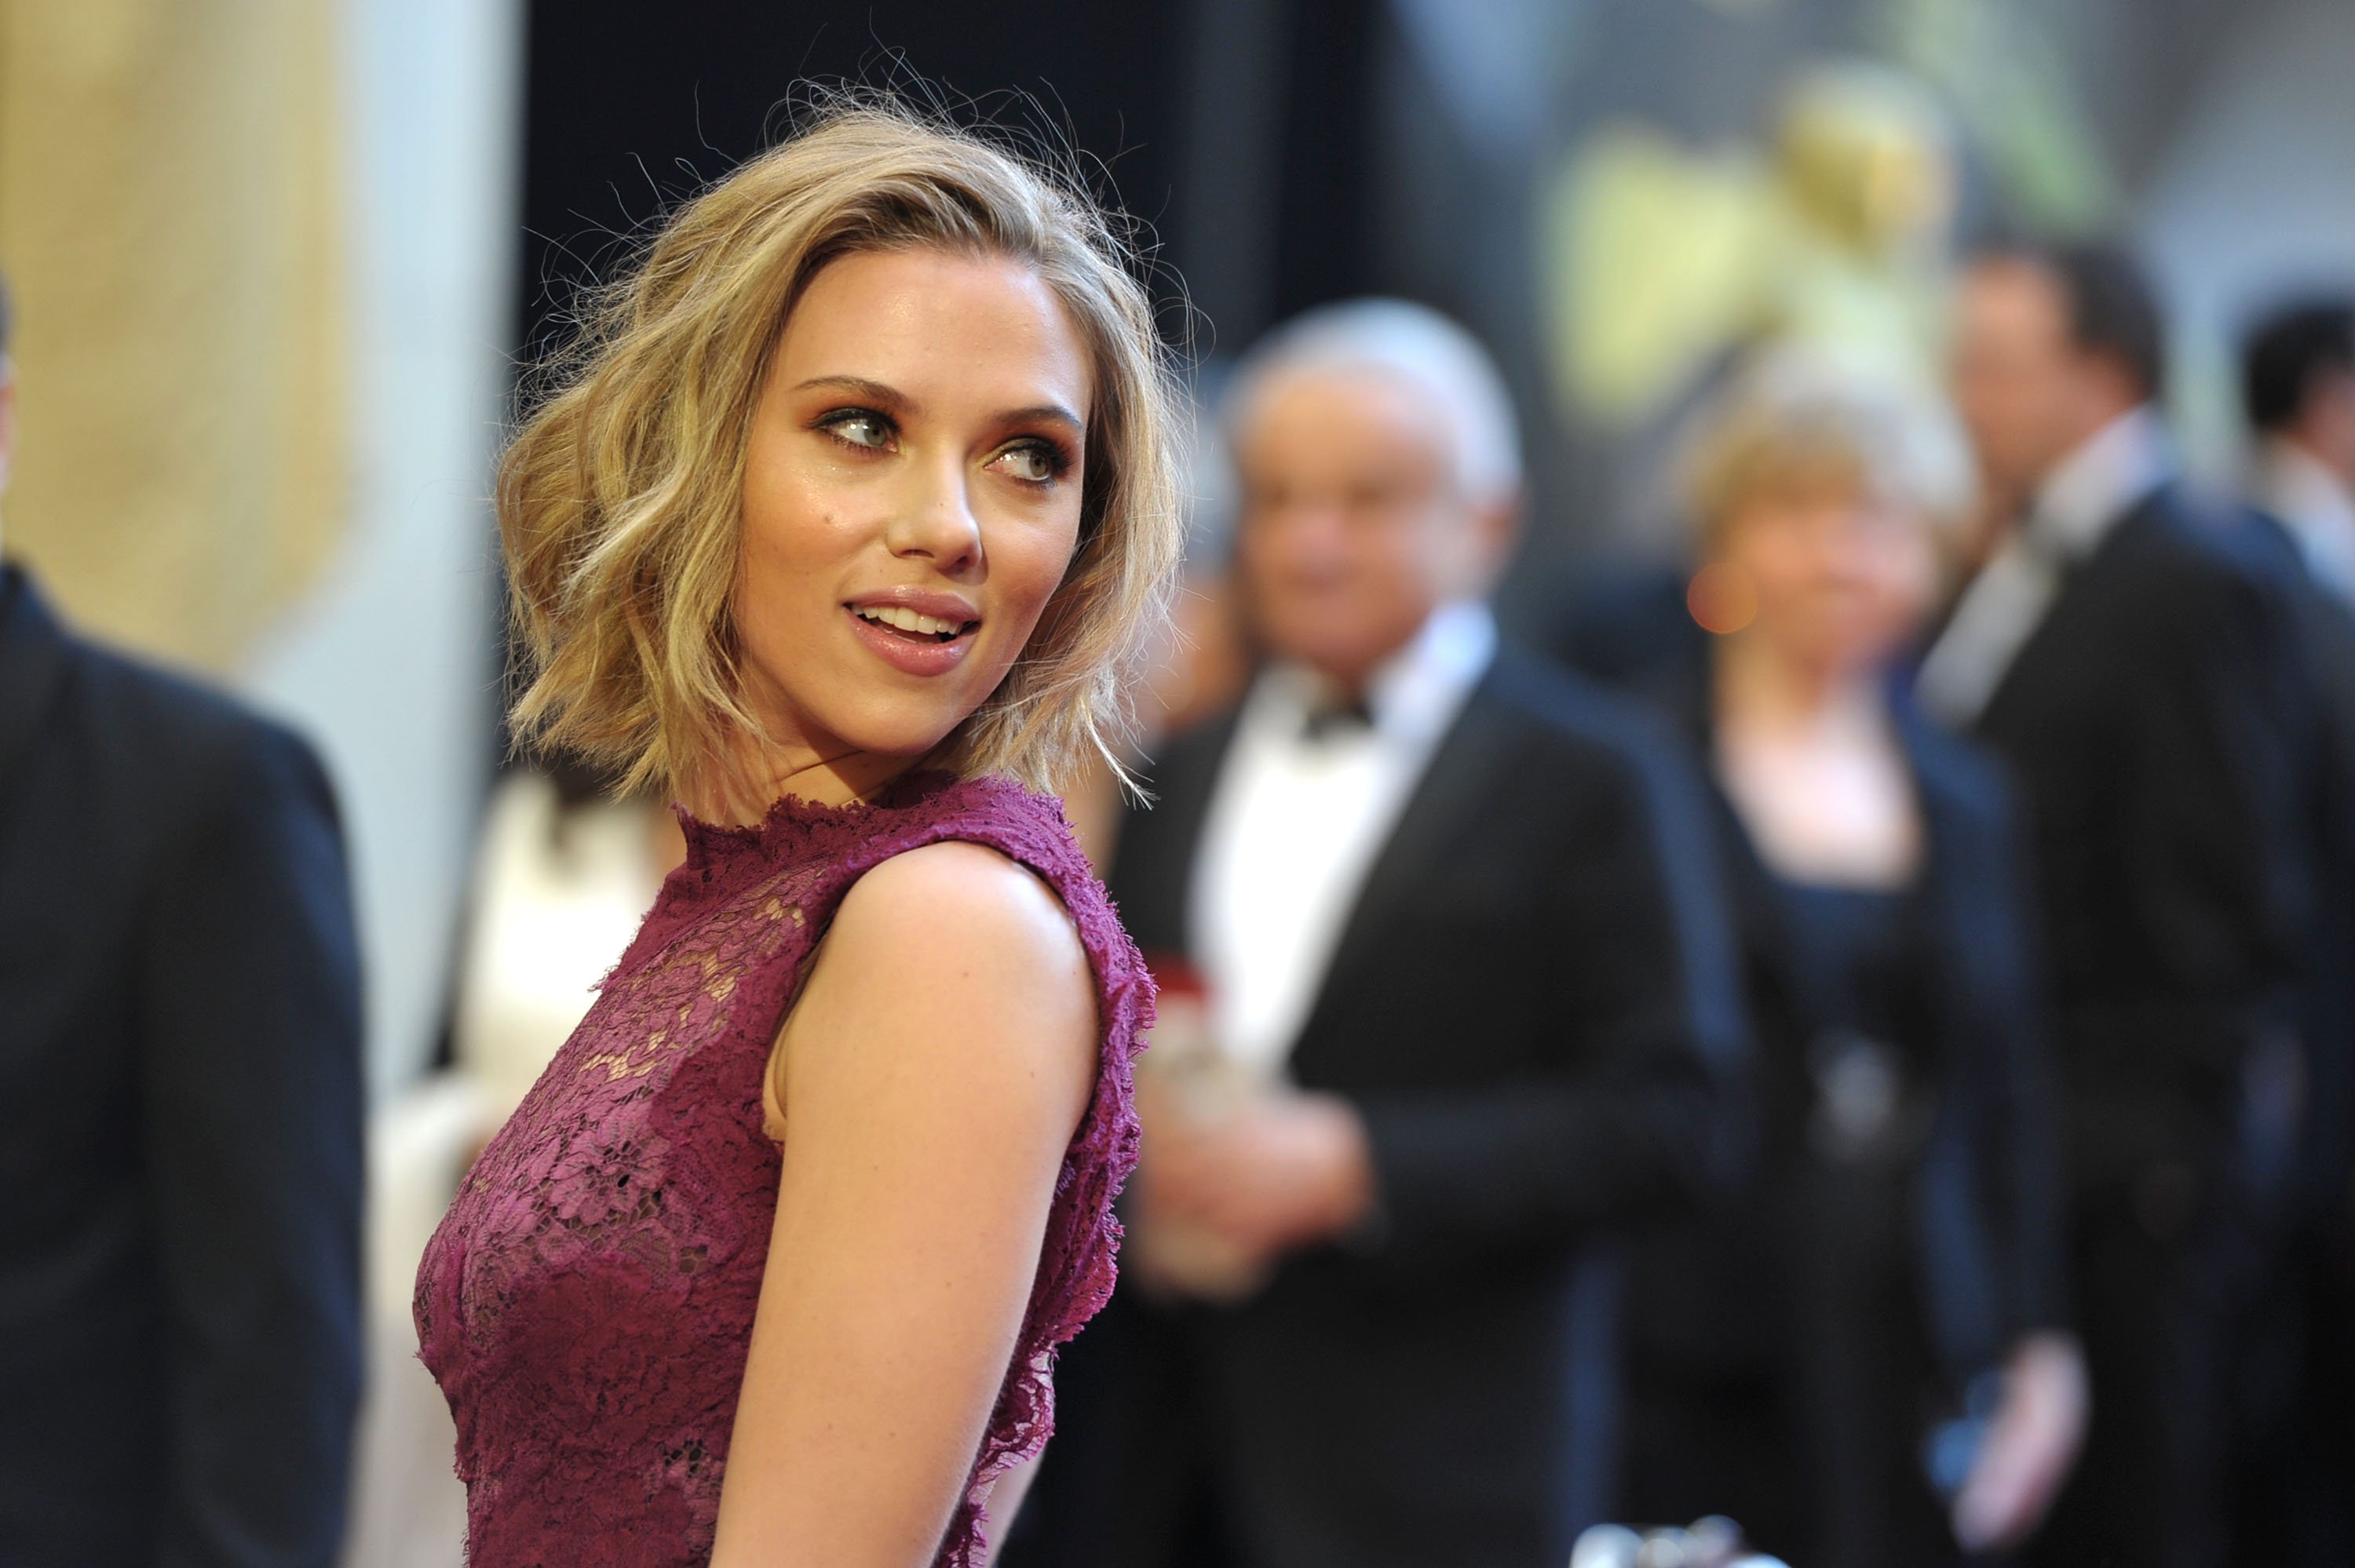 Scarlett Johansson arrives at the 83rd Annual Academy Awards held at the Kodak Theatre on February 27, 2011 in Hollywood, California. | Source: Getty Images